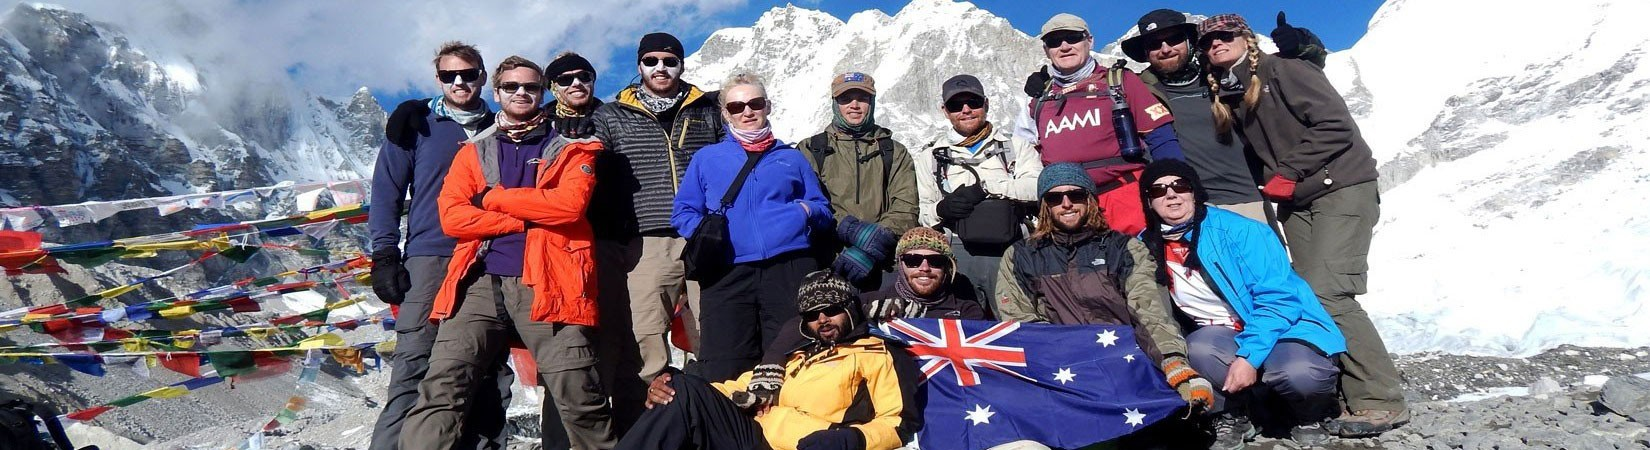 Australian Group at Everest Base Camp